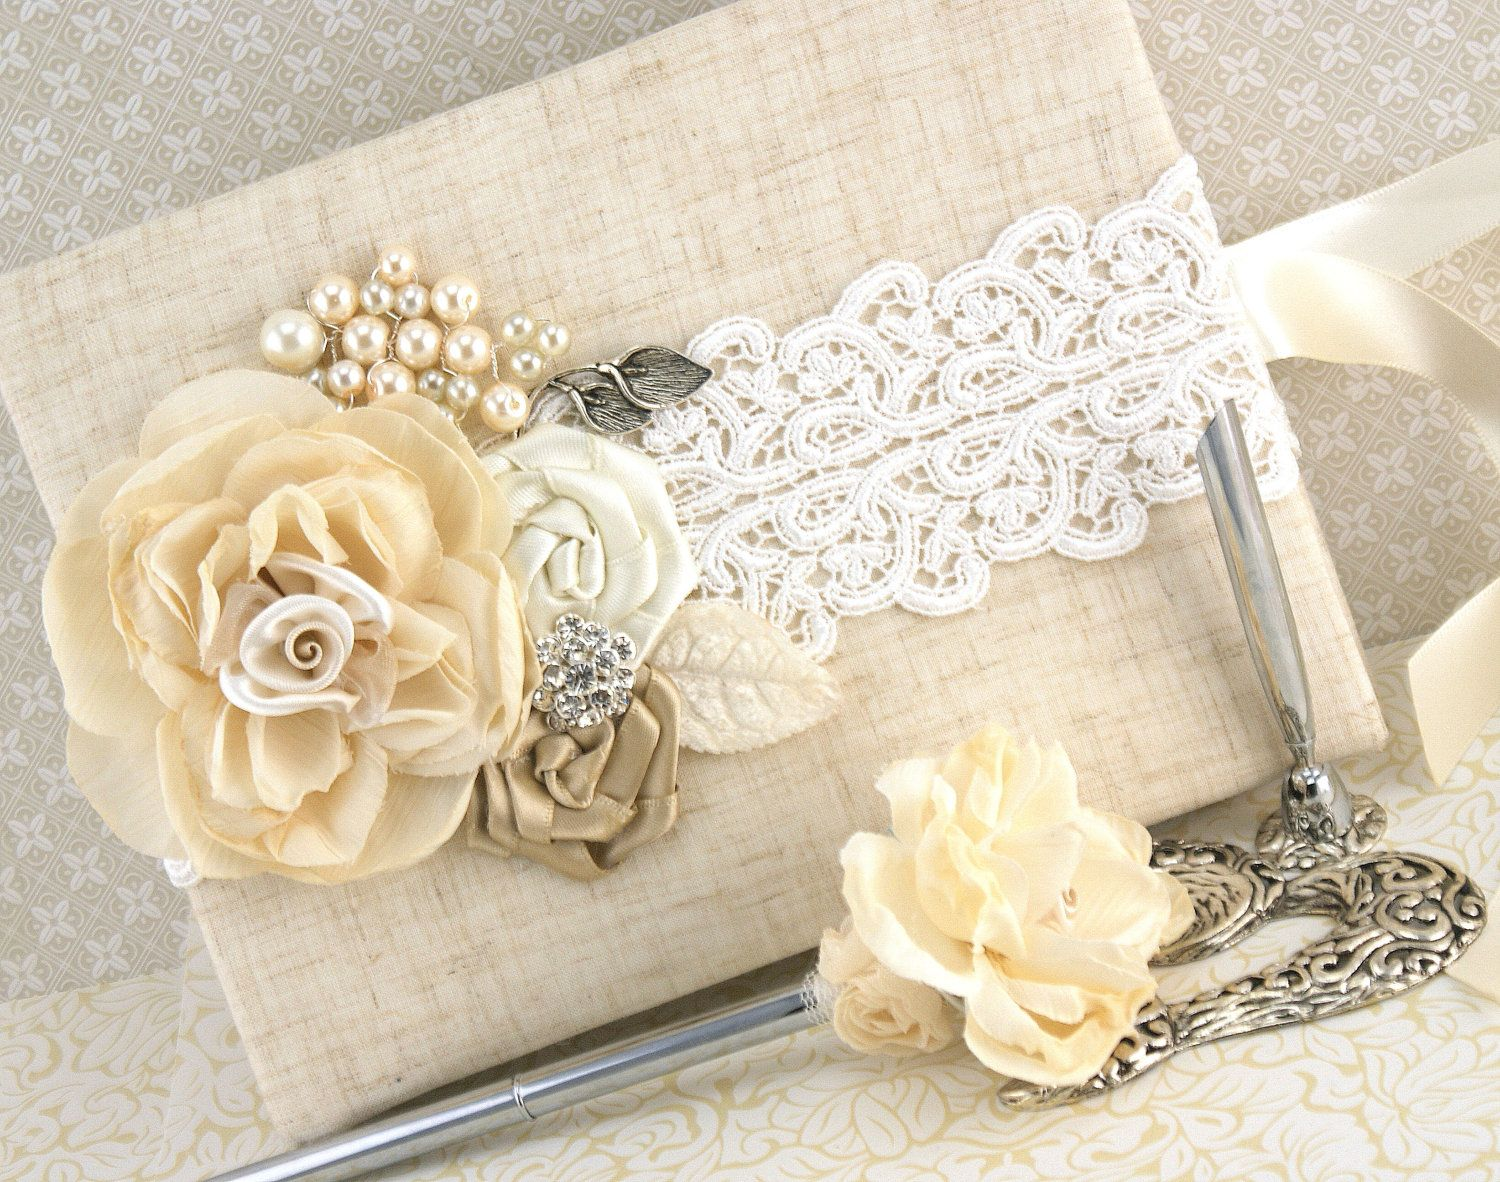 Wedding Guest Book and Pen Set Shabby Chic Vintage by SolBijou 13000  wedding decorations